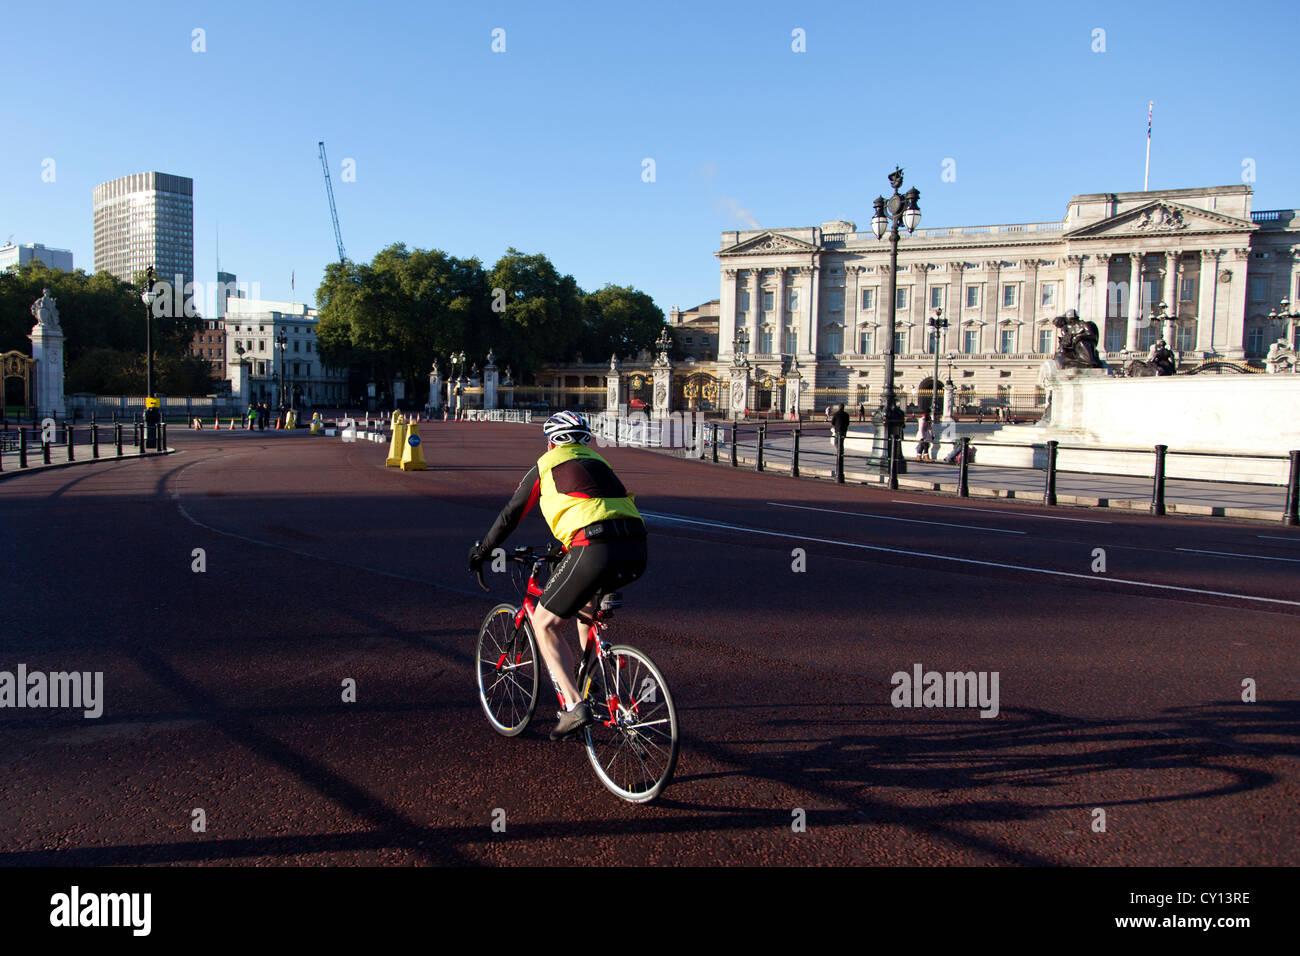 14th Oct 2012,  Prince's Trust Palace To Palace charity bike ride, The Mall, London, UK - Stock Image